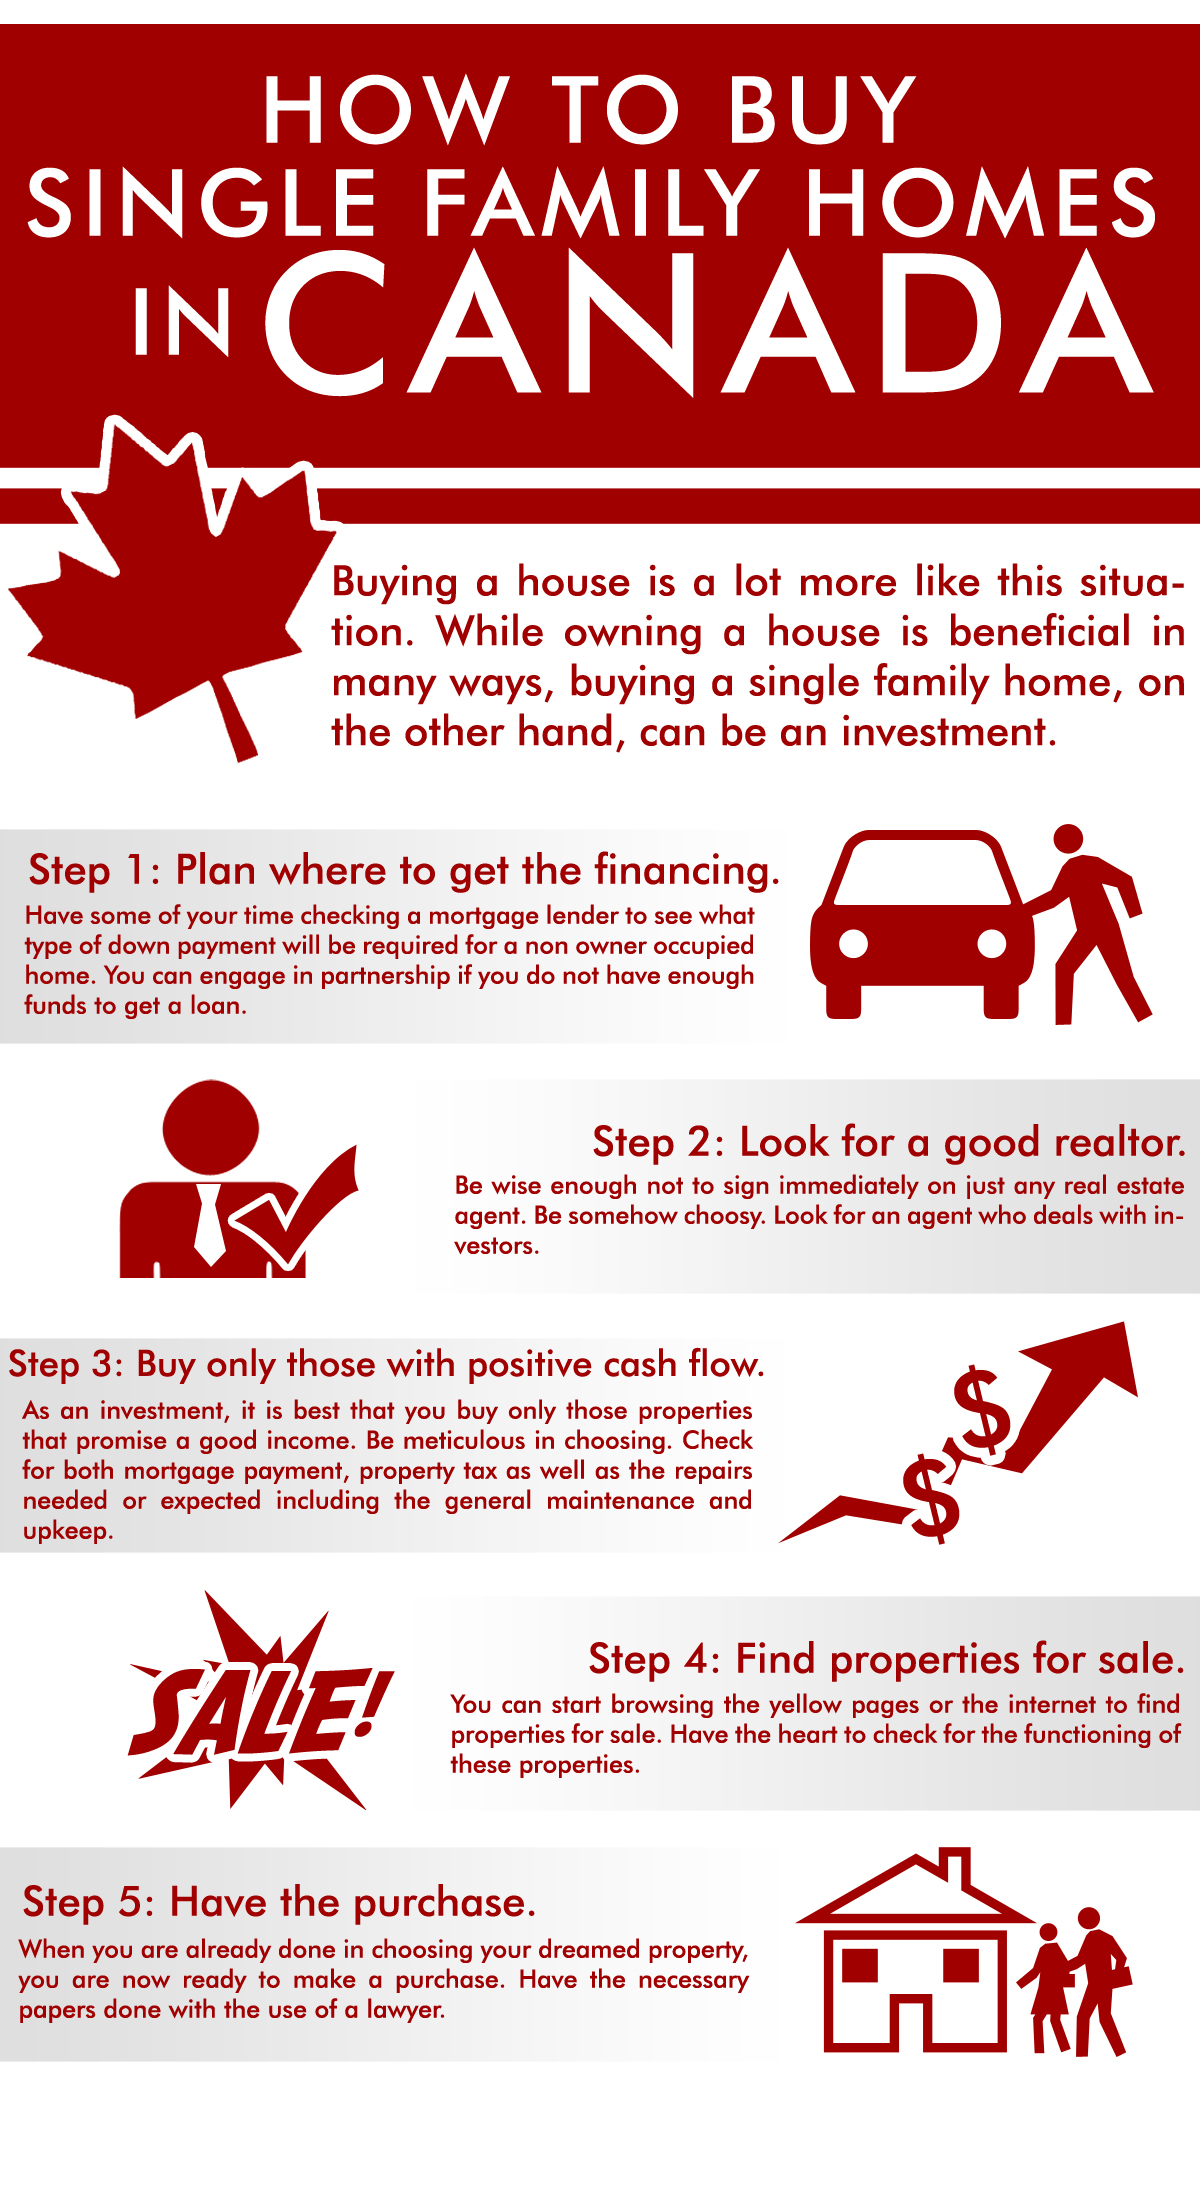 how to buy family single home in canada